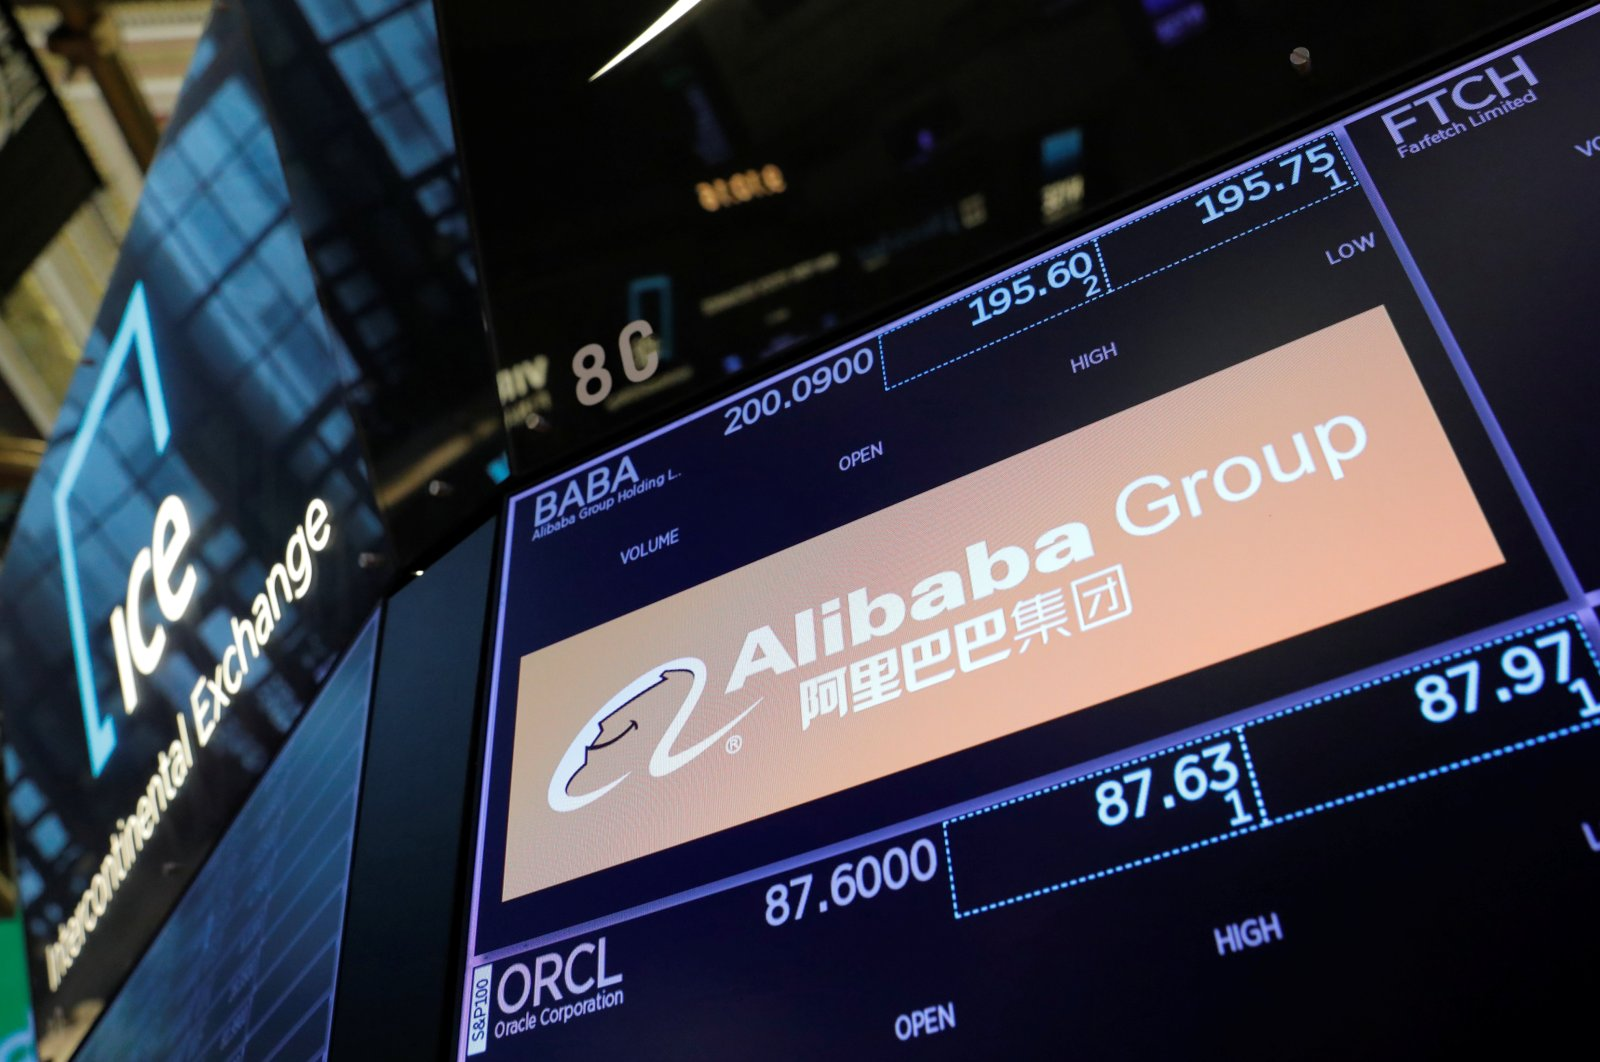 The logo of the Alibaba Group is seen on the trading floor at the New York Stock Exchange (NYSE) in Manhattan, New York City, U.S., Aug. 3, 2021. (Reuters Photo)